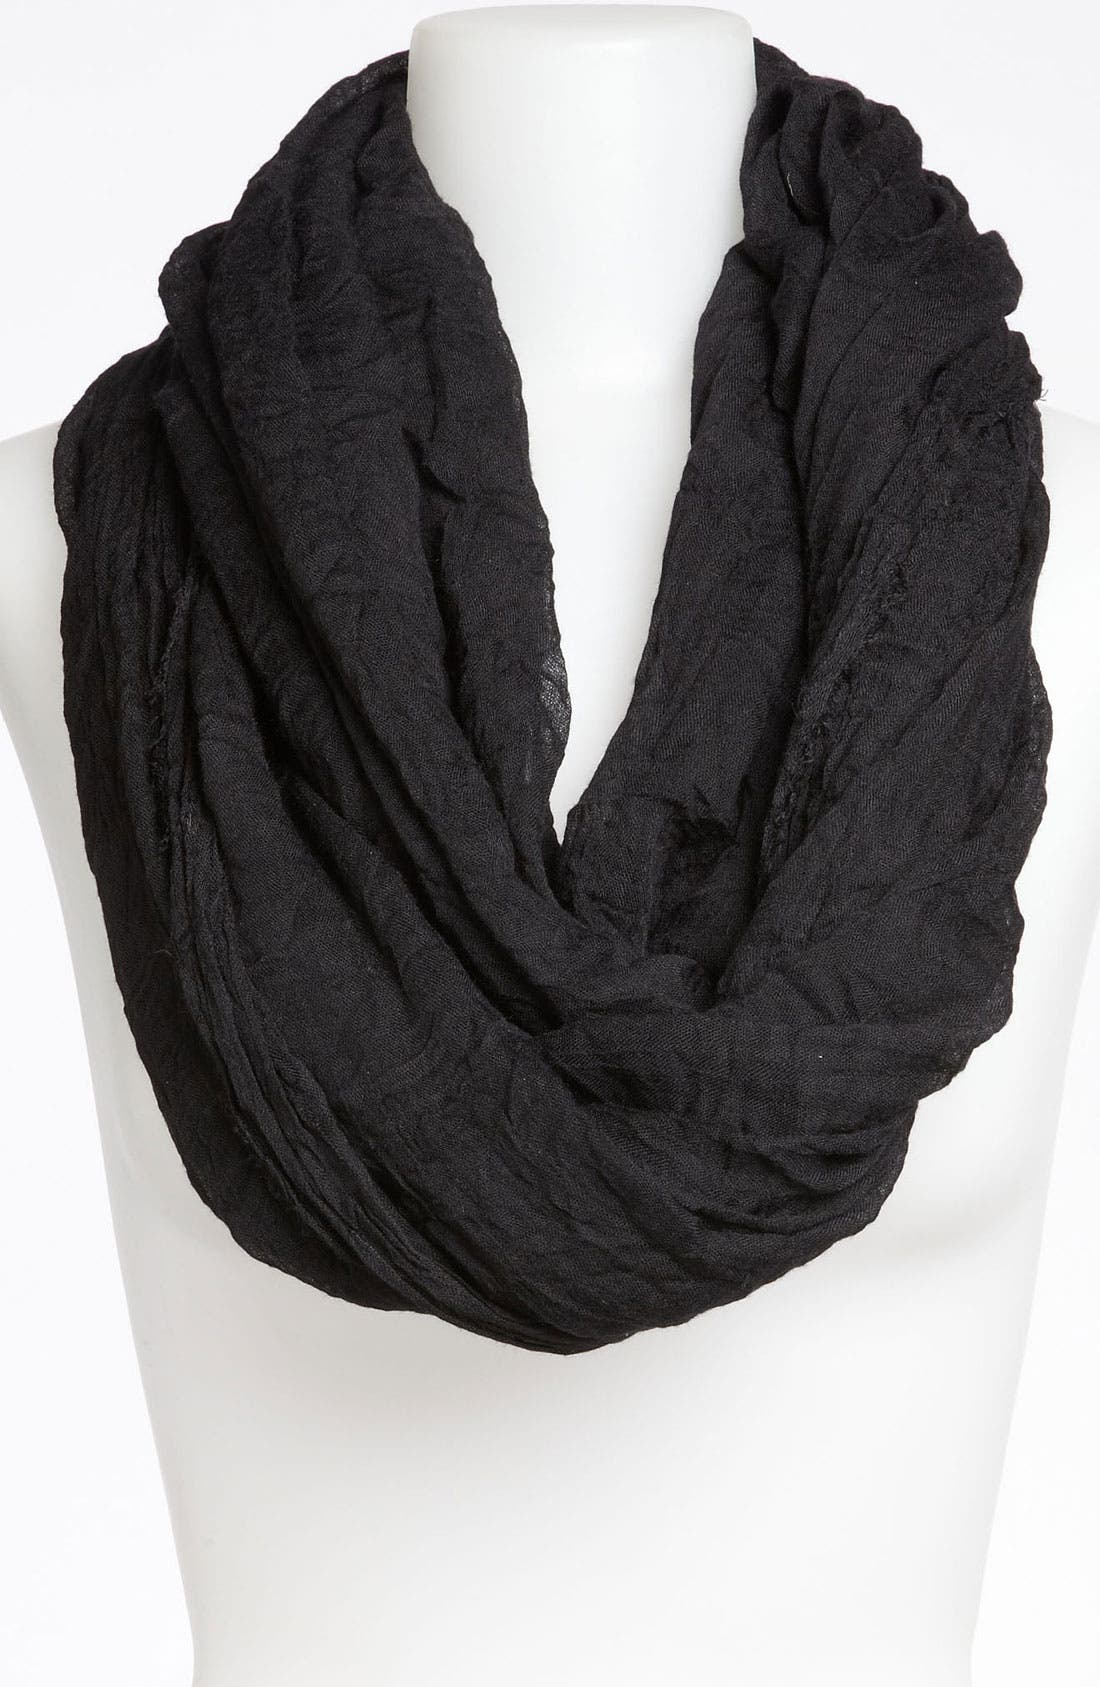 'The Ringer' Infinity Scarf,                             Main thumbnail 1, color,                             001